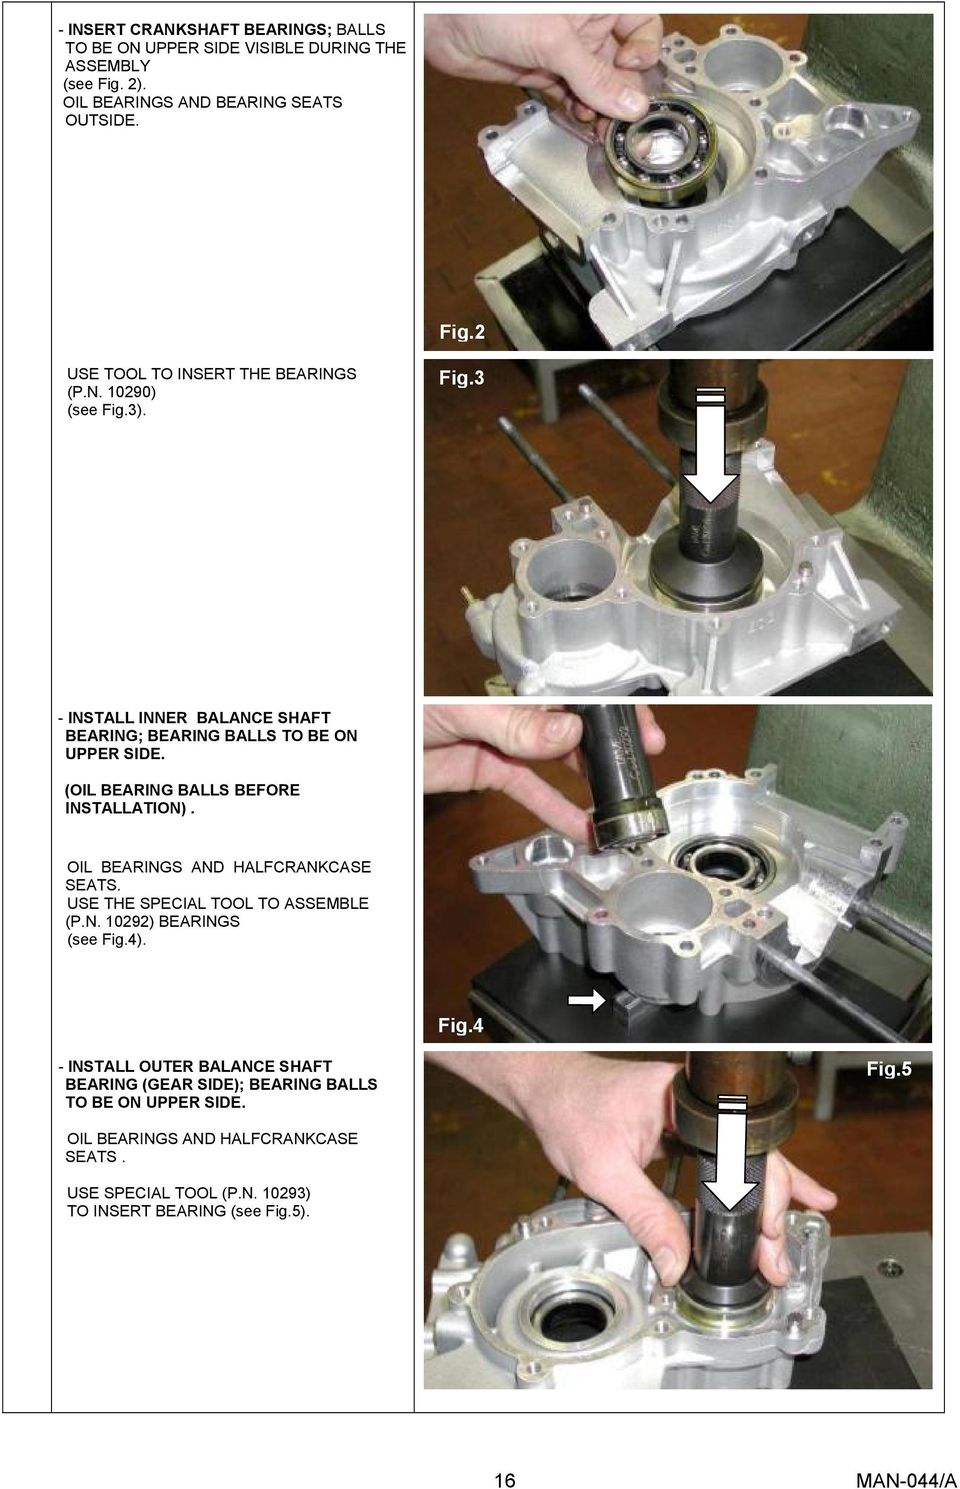 OIL BEARINGS AND HALFCRANKCASE SEATS. USE THE SPECIAL TOOL TO ASSEMBLE (P.N. 10292) BEARINGS (see Fig.